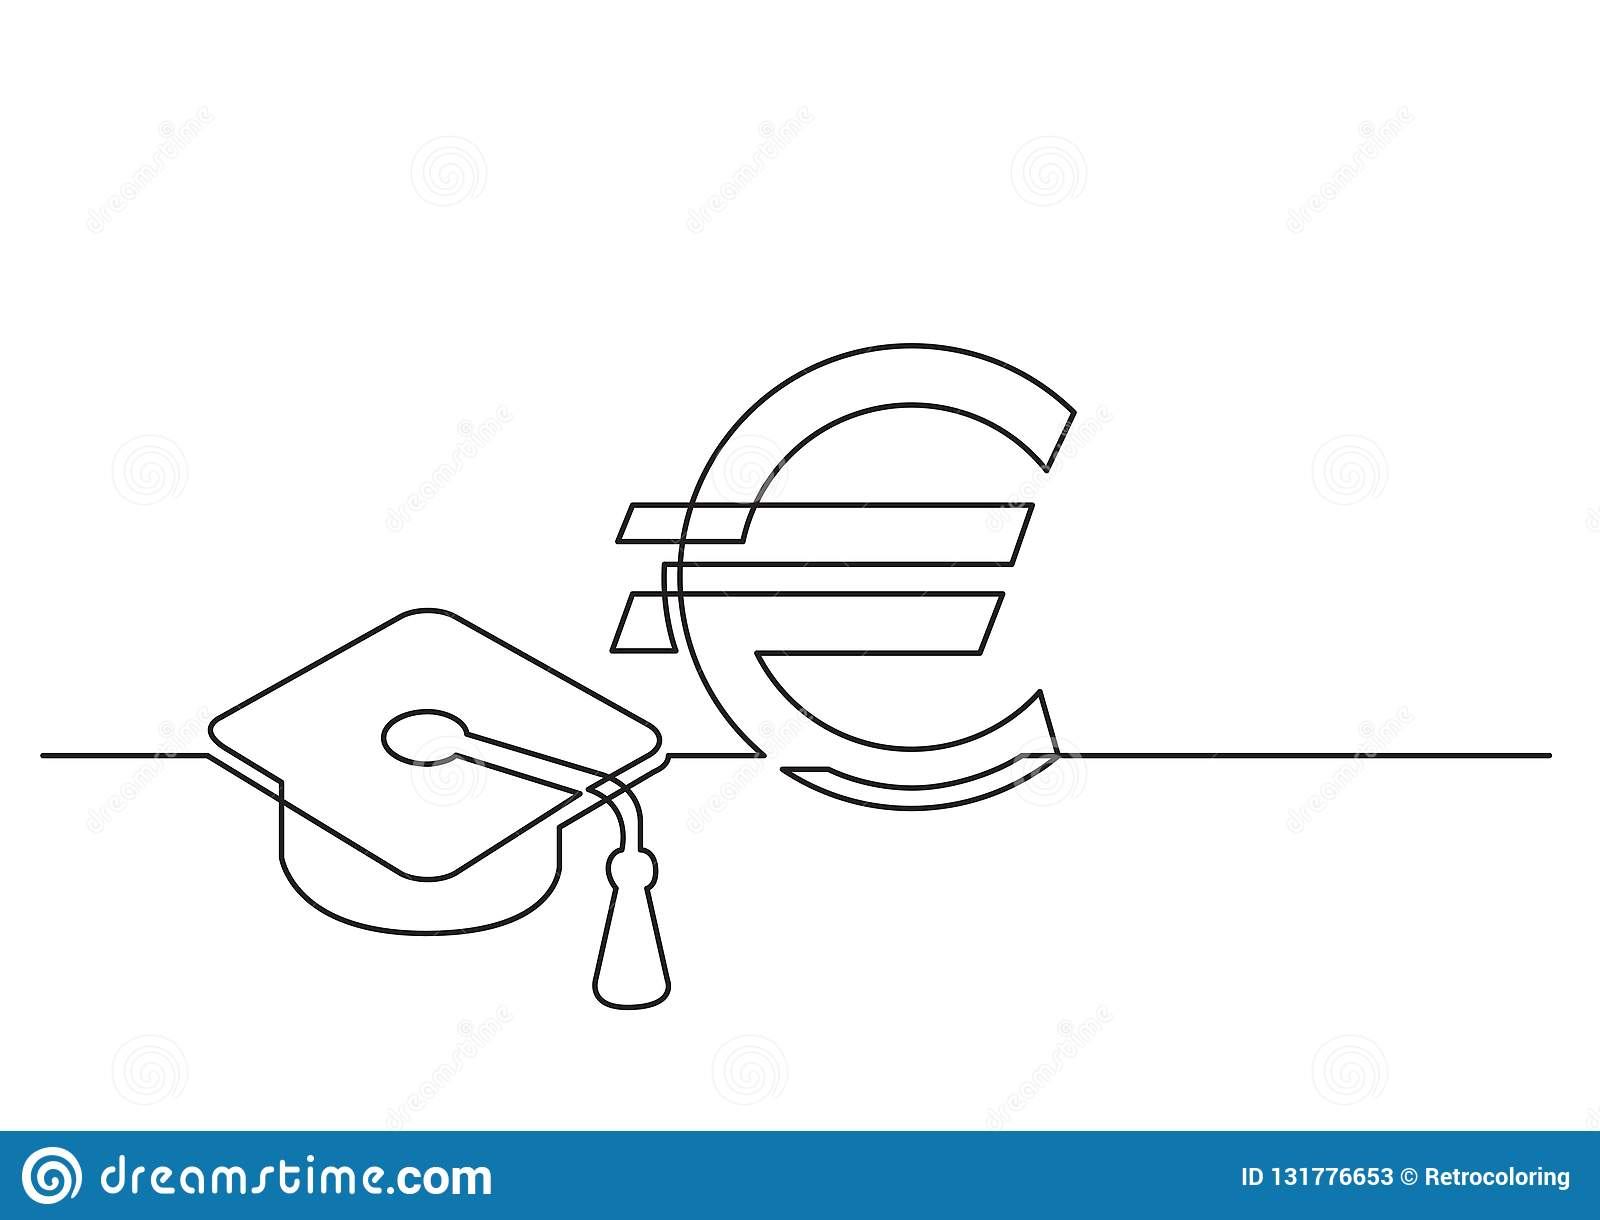 One line drawing of isolated vector object - cost of education in euro